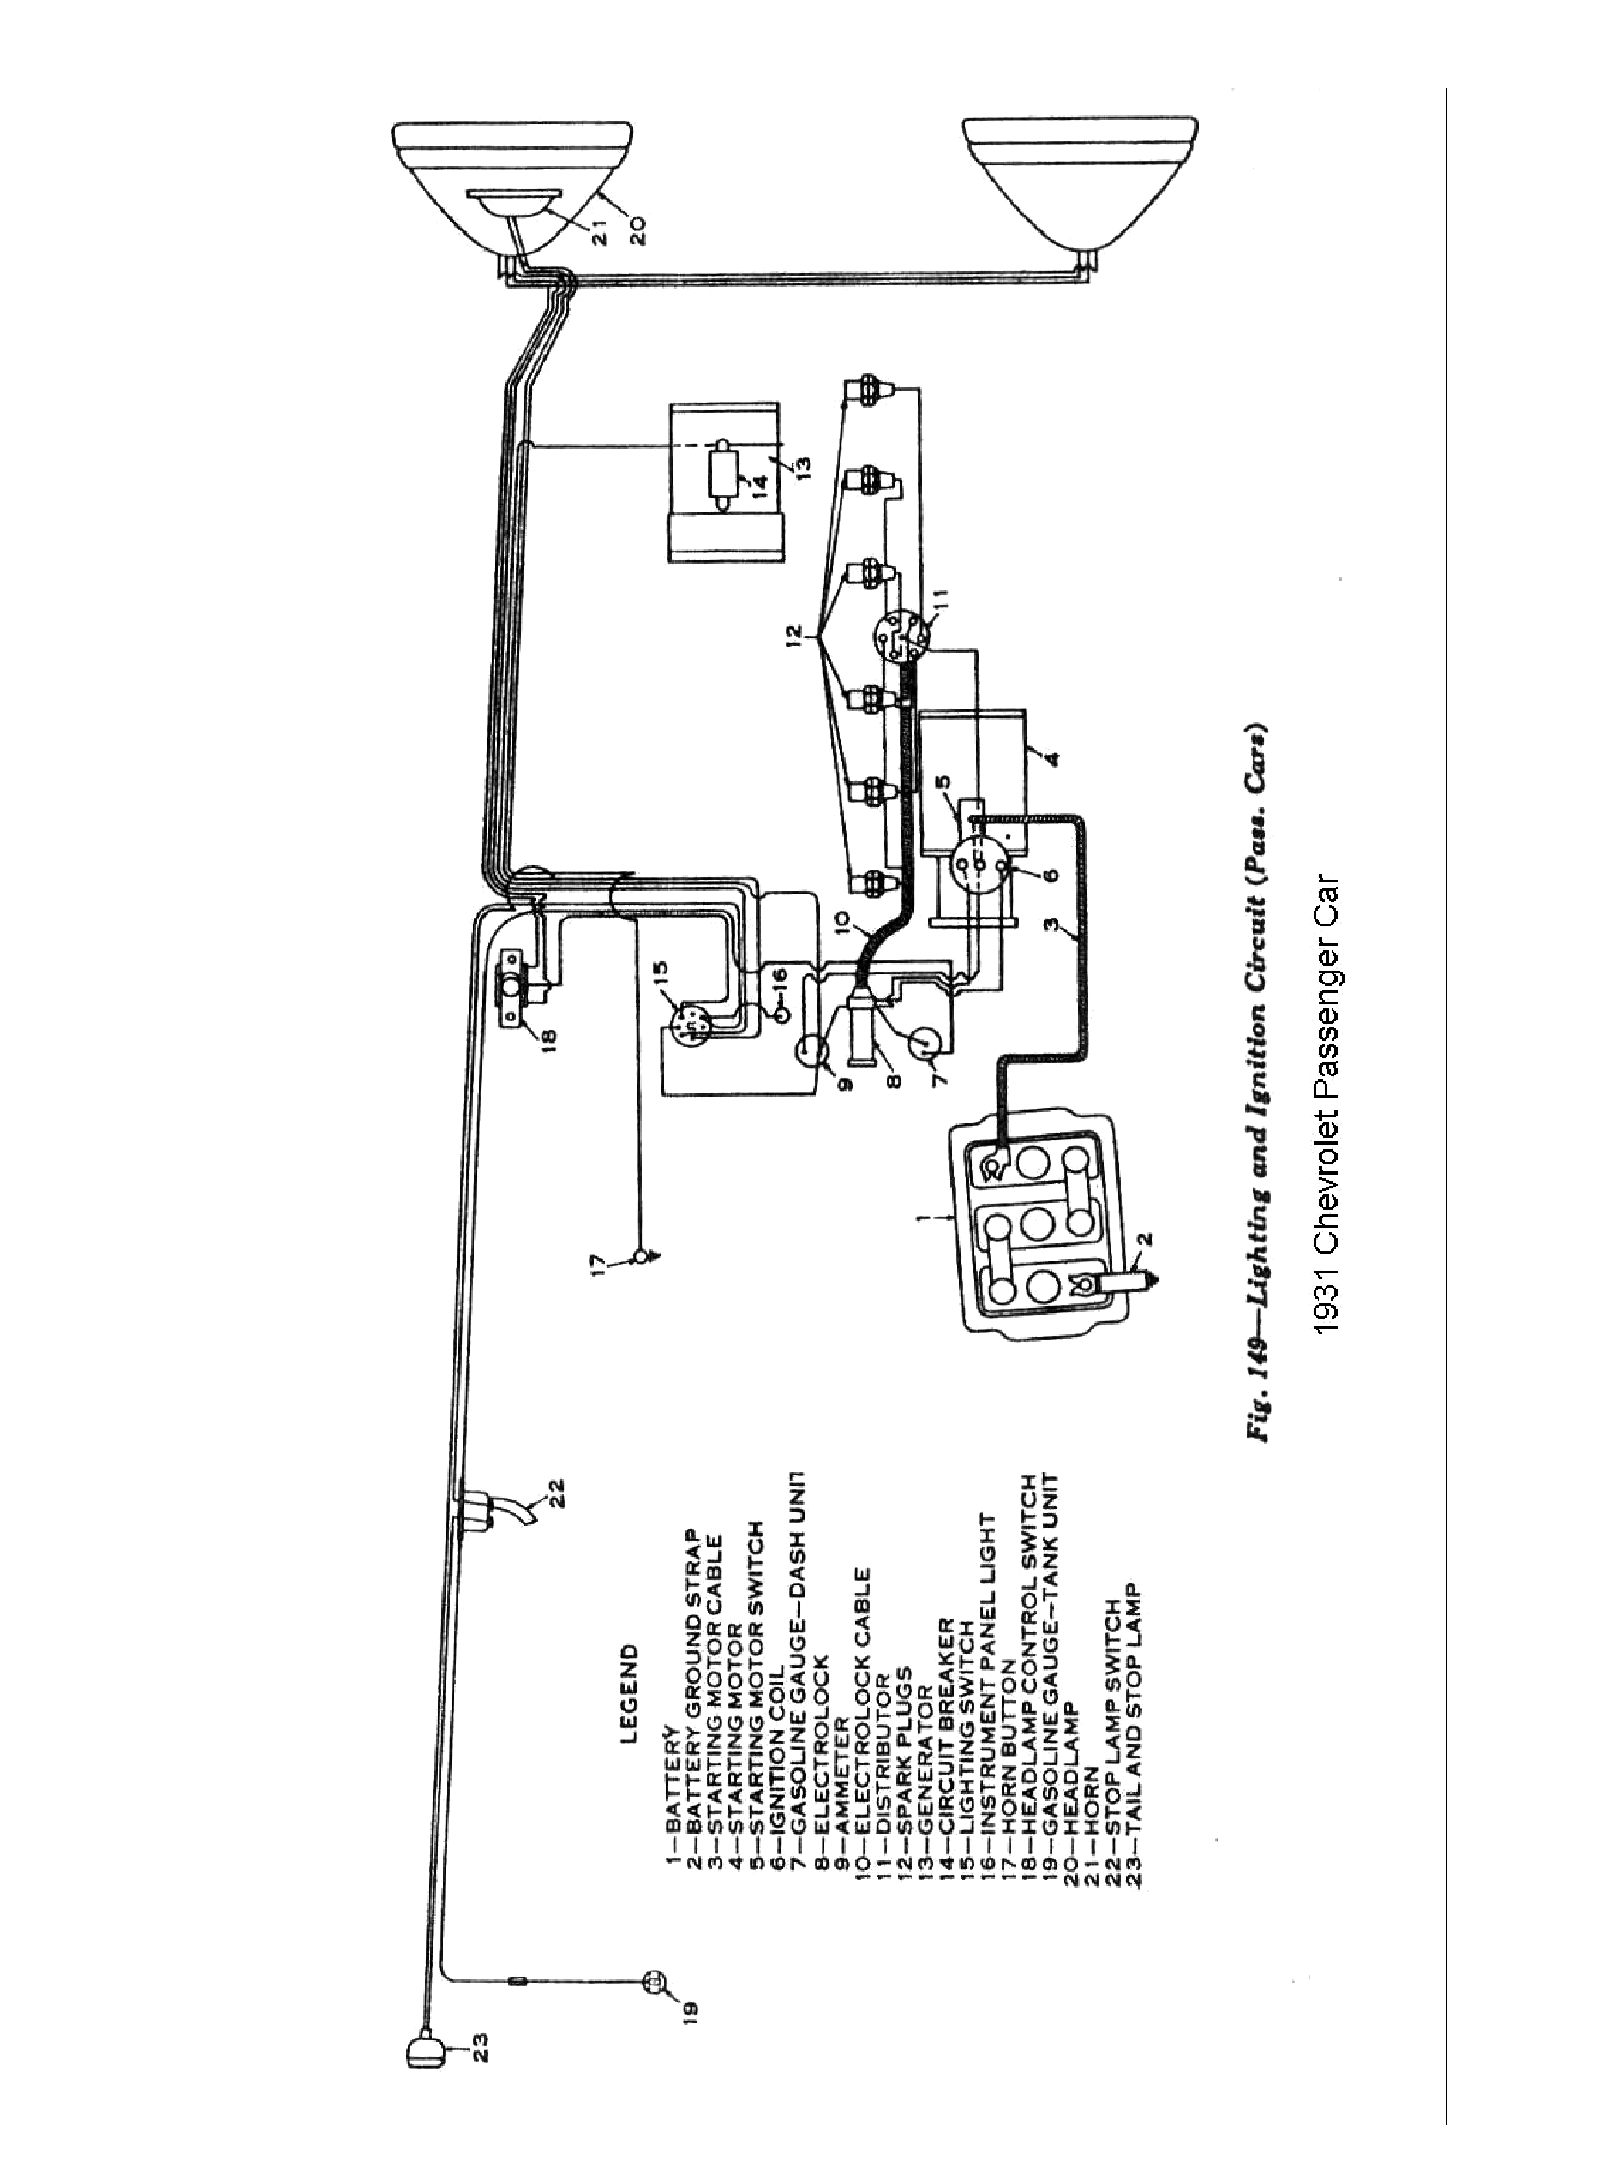 1957 Chevrolet Wiring Diagram Starting Know About Wiring Diagram \u2022  1958 283 Chevy Solinoid Wiring Diagram